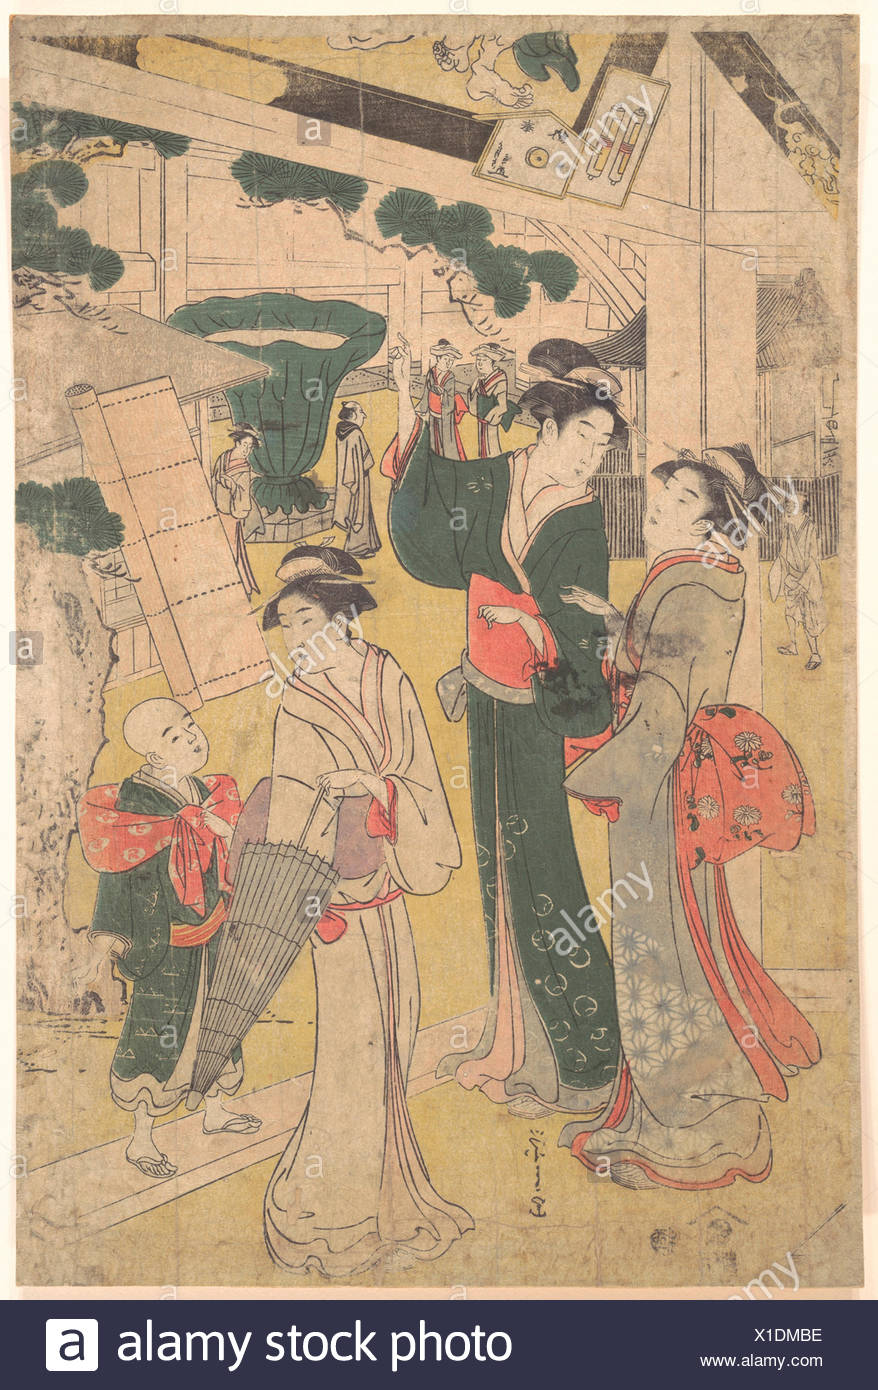 Print. Artist: Chobunsai Eishi (Japanese, 1756-1829); Period: Edo period (1615-1868); Culture: Japan; Medium: Polychrome woodblock print; ink and - Stock Image